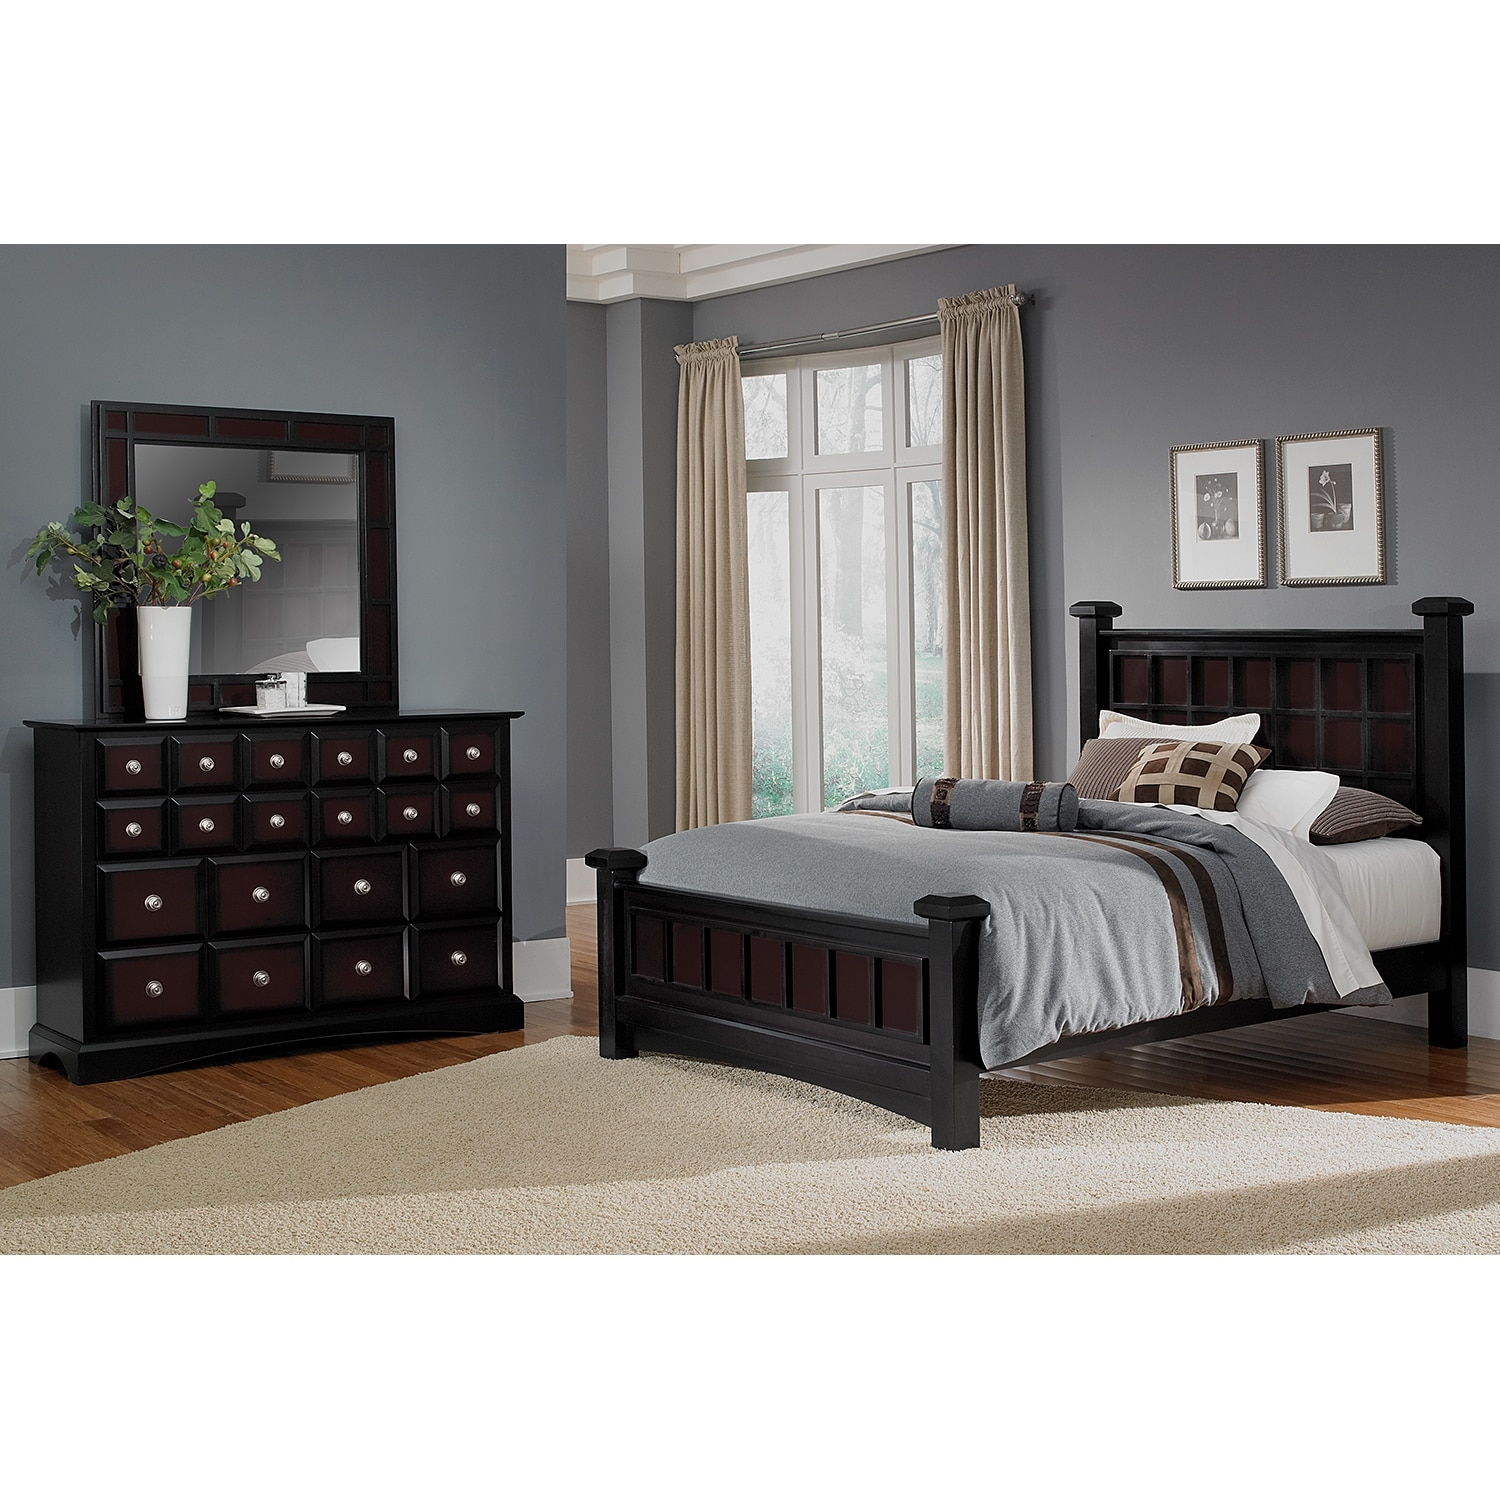 american signature bedroom furniture winchester 5 bedroom set black and burnished 14013